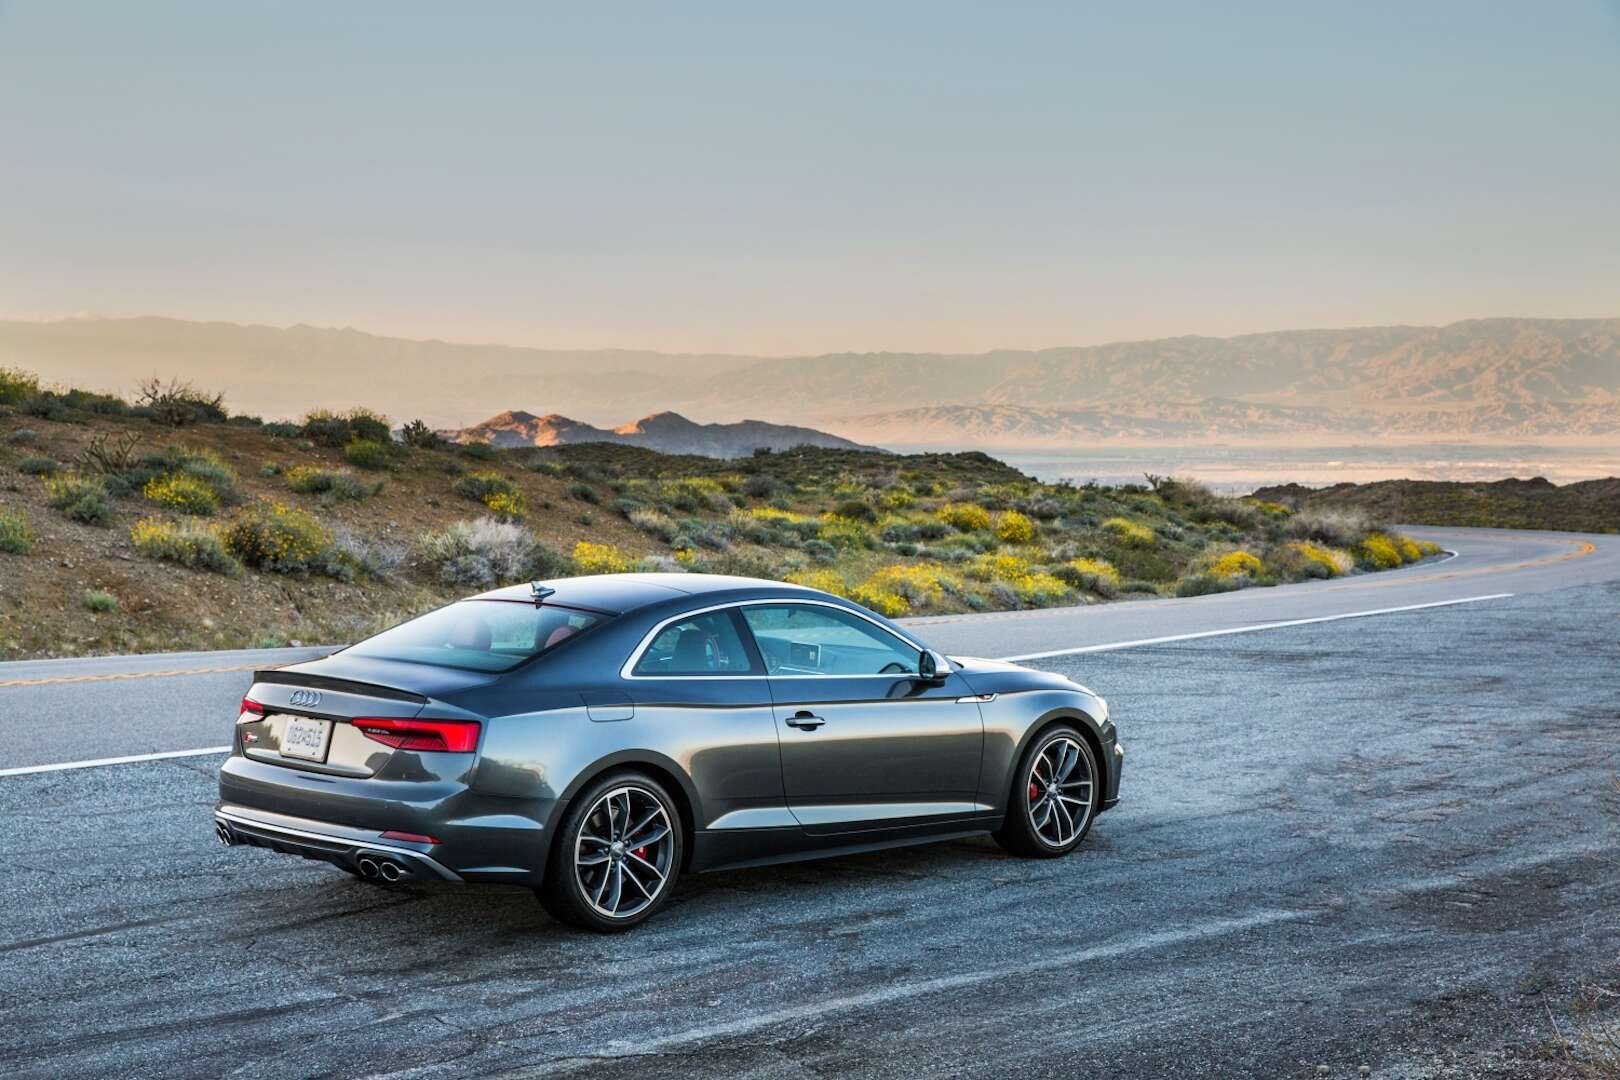 Audi S Coupe Test Drive Review Another TwoDoor Car In Danger - Audi 2 door sports car